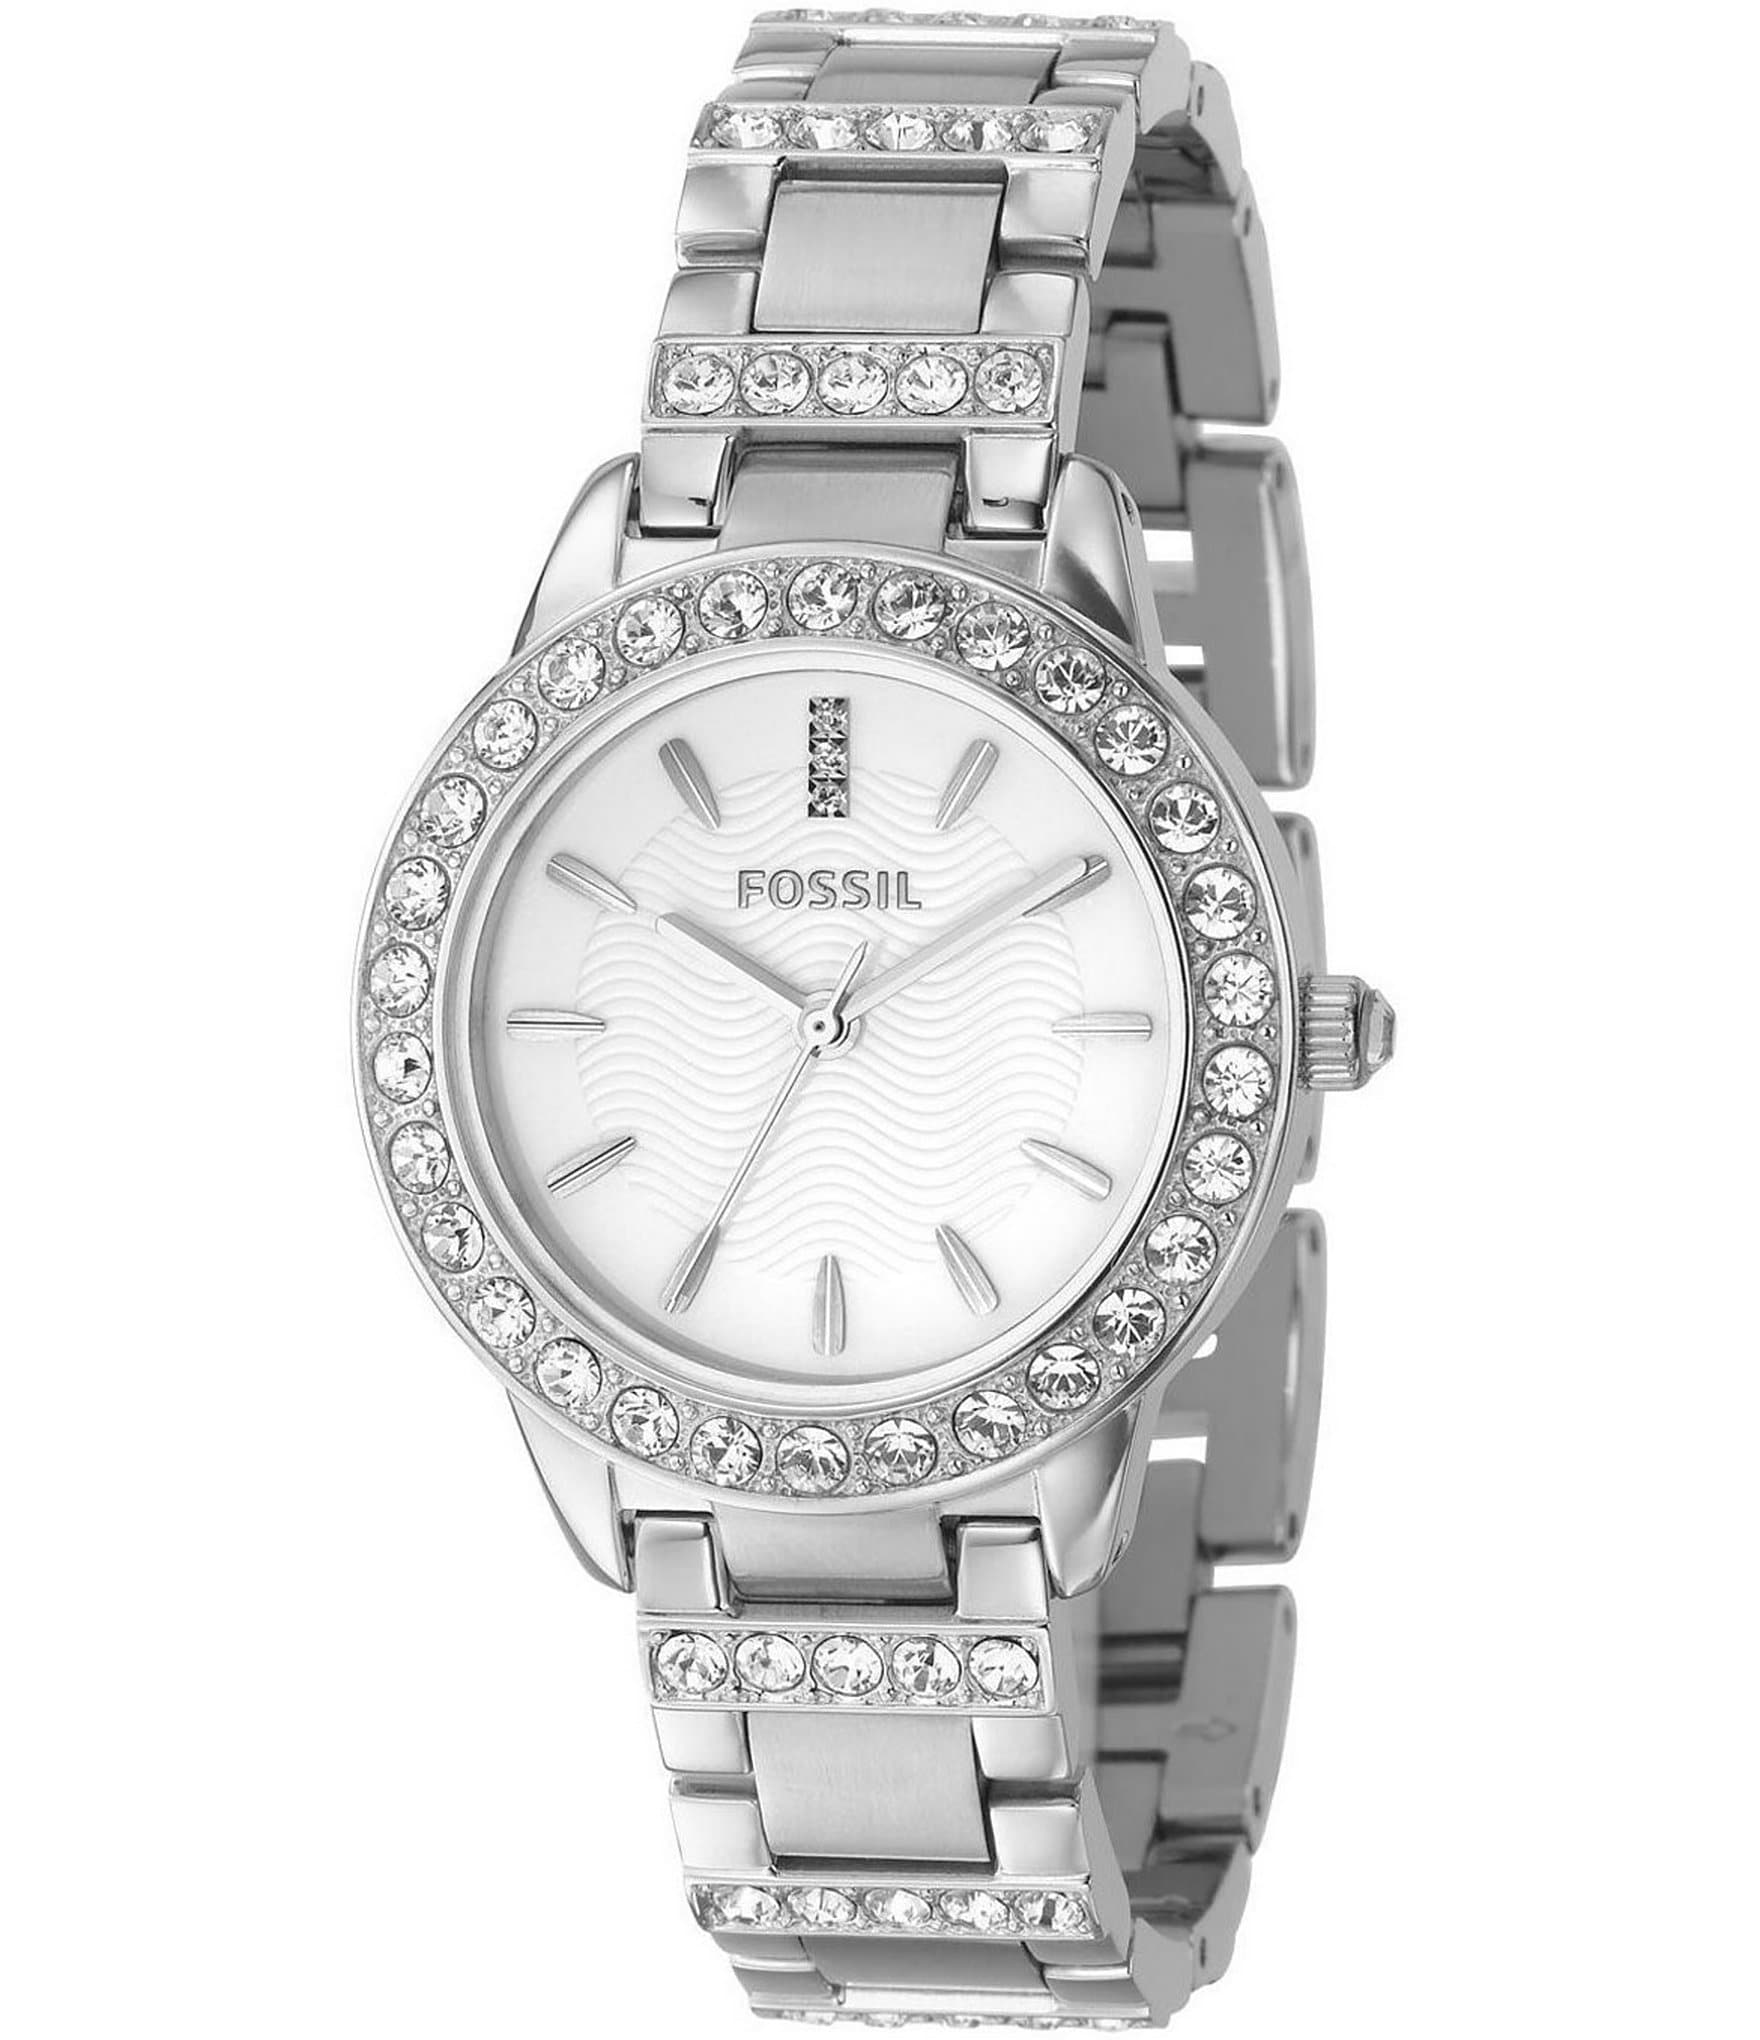 0553f9dc946 Fossil White-Dial Glitz Dress Watch